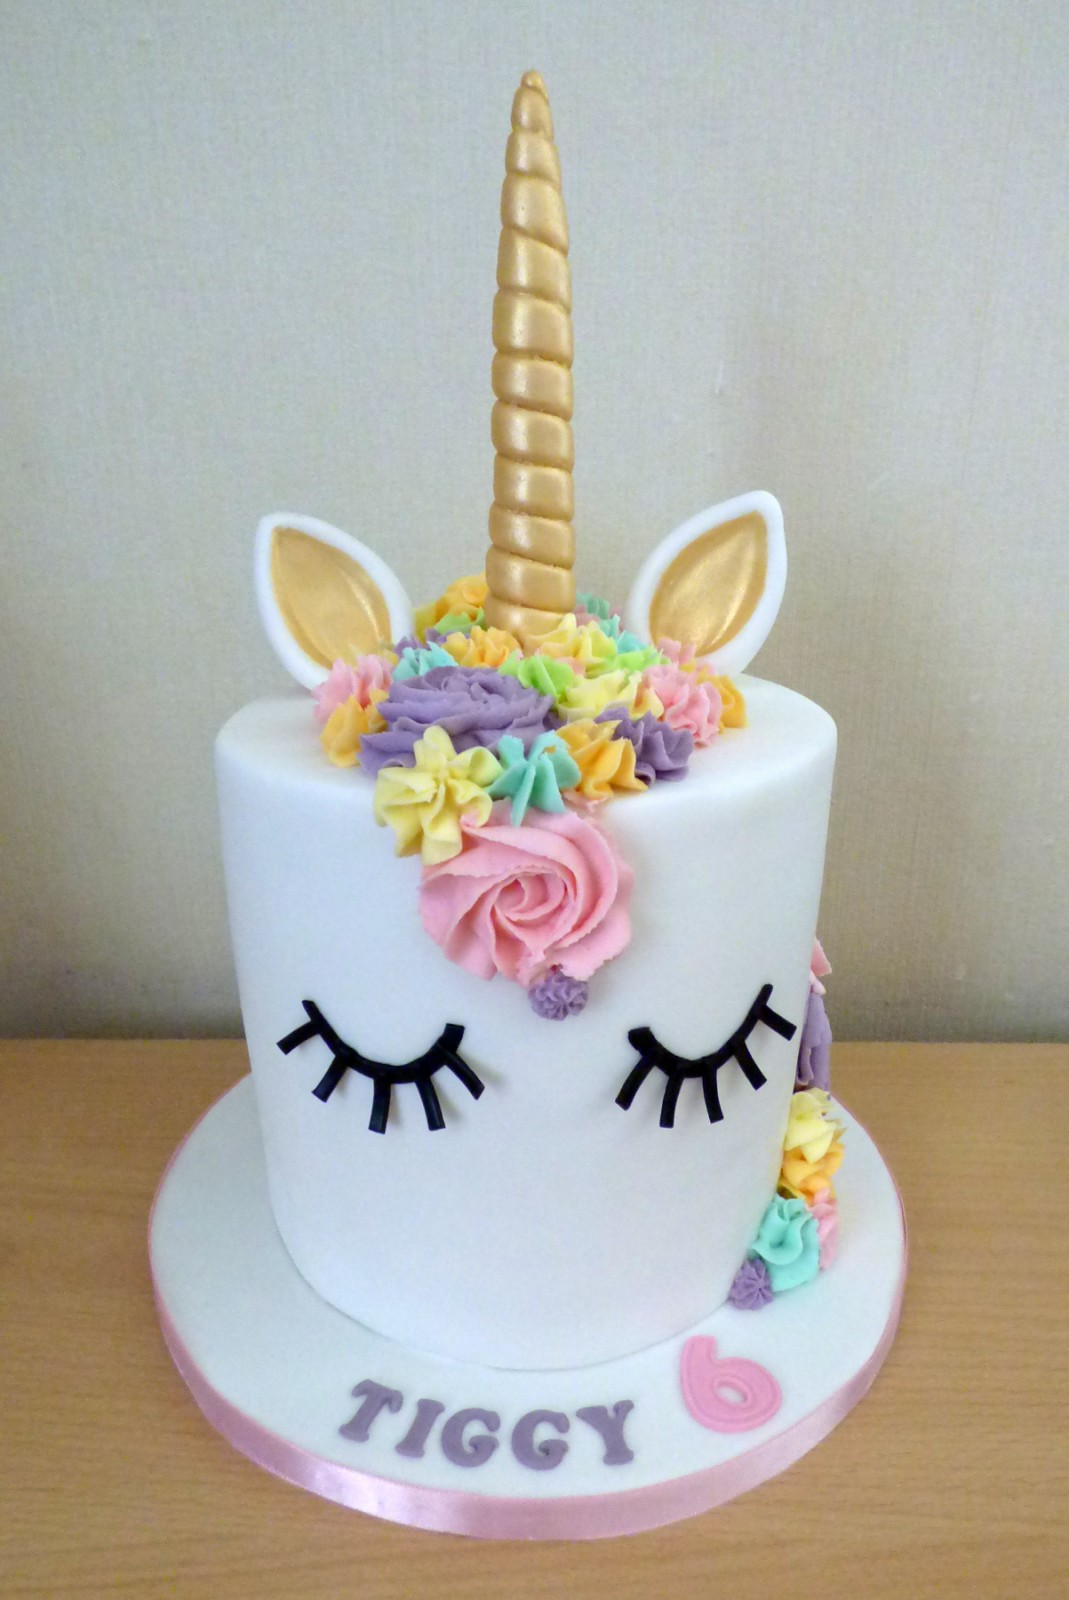 My Little Pony Unicorn Cake 171 Susie S Cakes